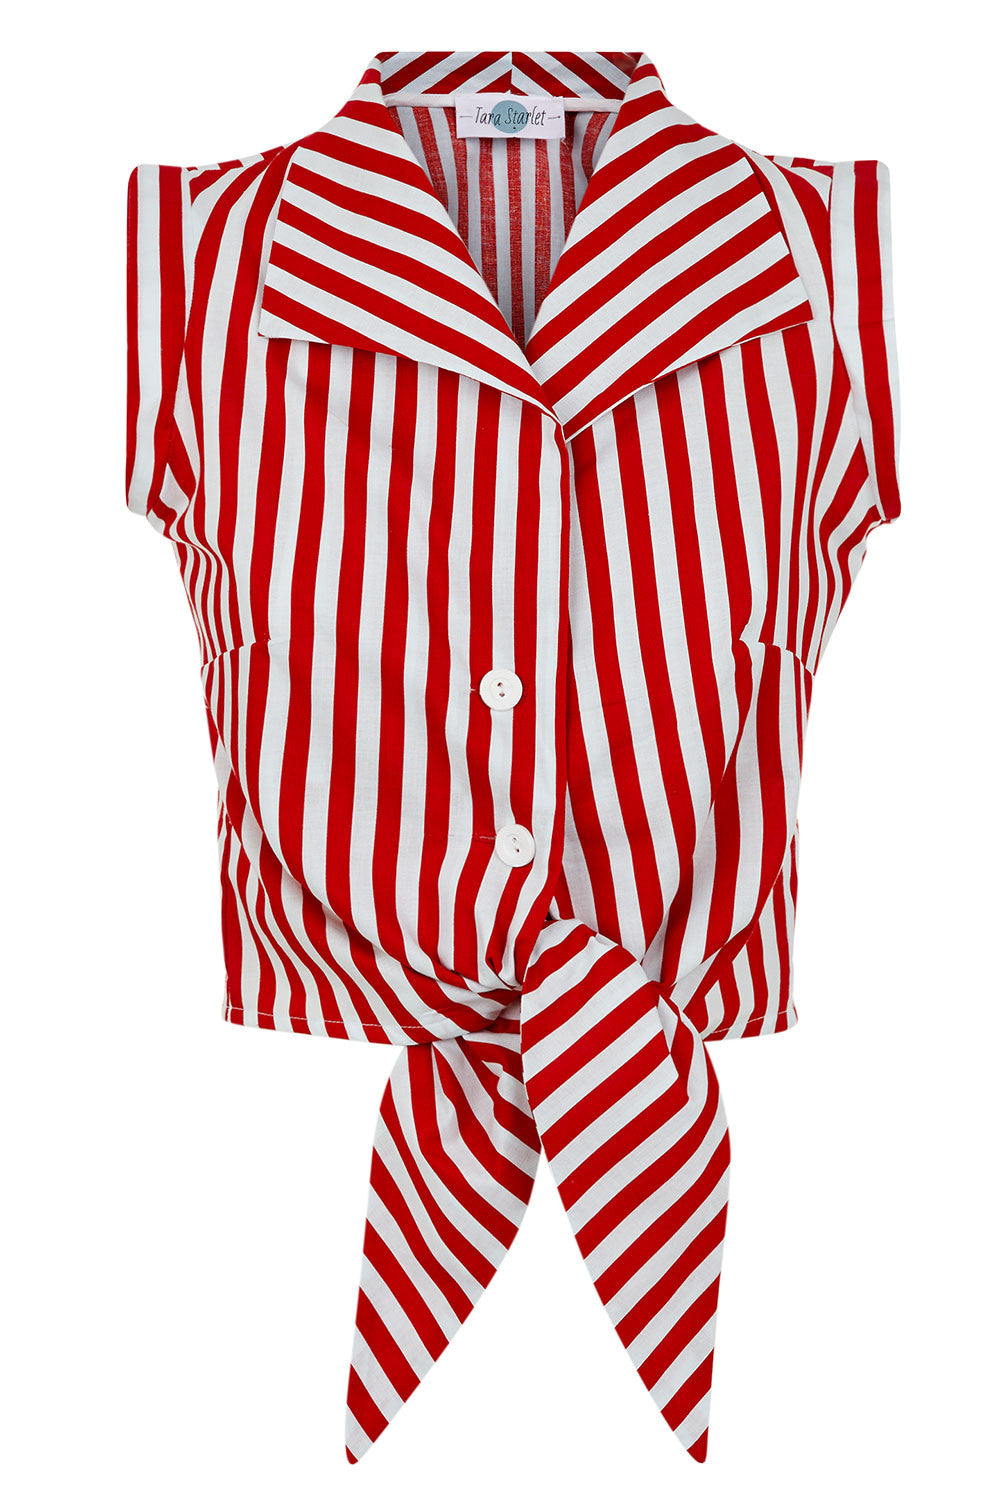 The Tie-front Shirt - Red with White Stripe